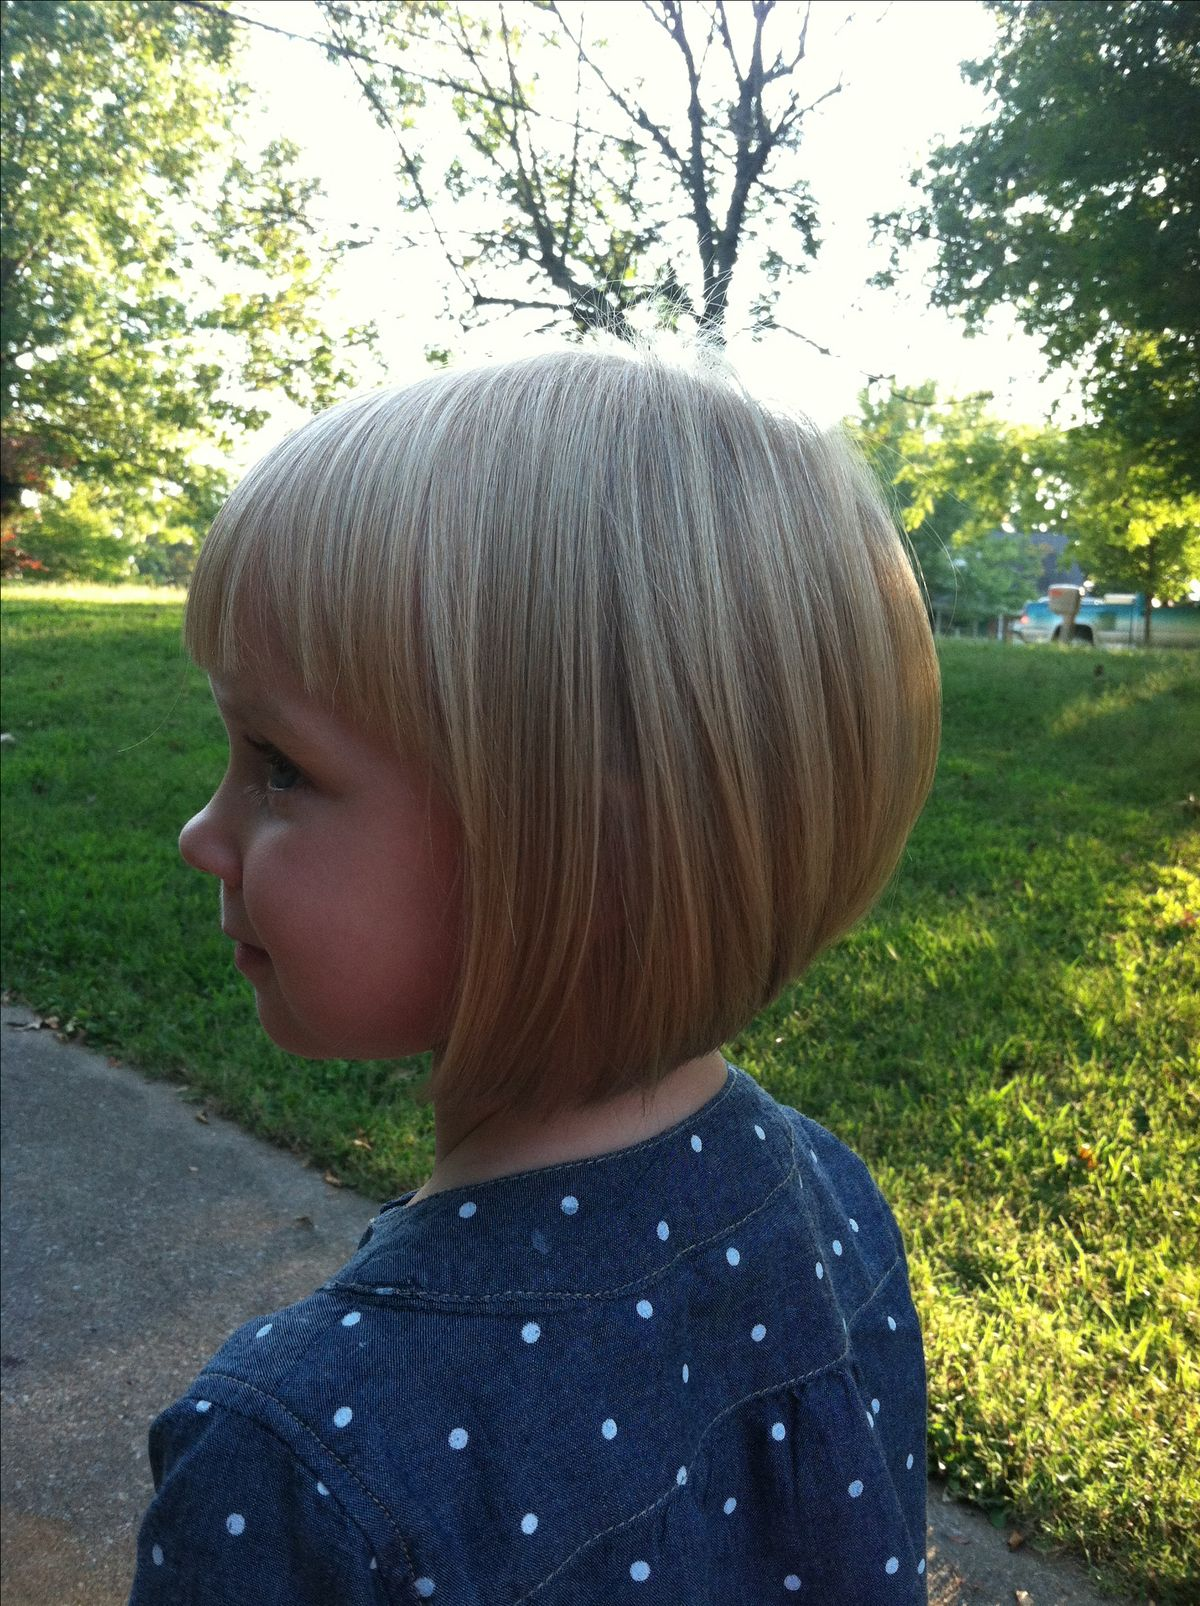 1000+ images about kids hair on Pinterest | Little girl ...